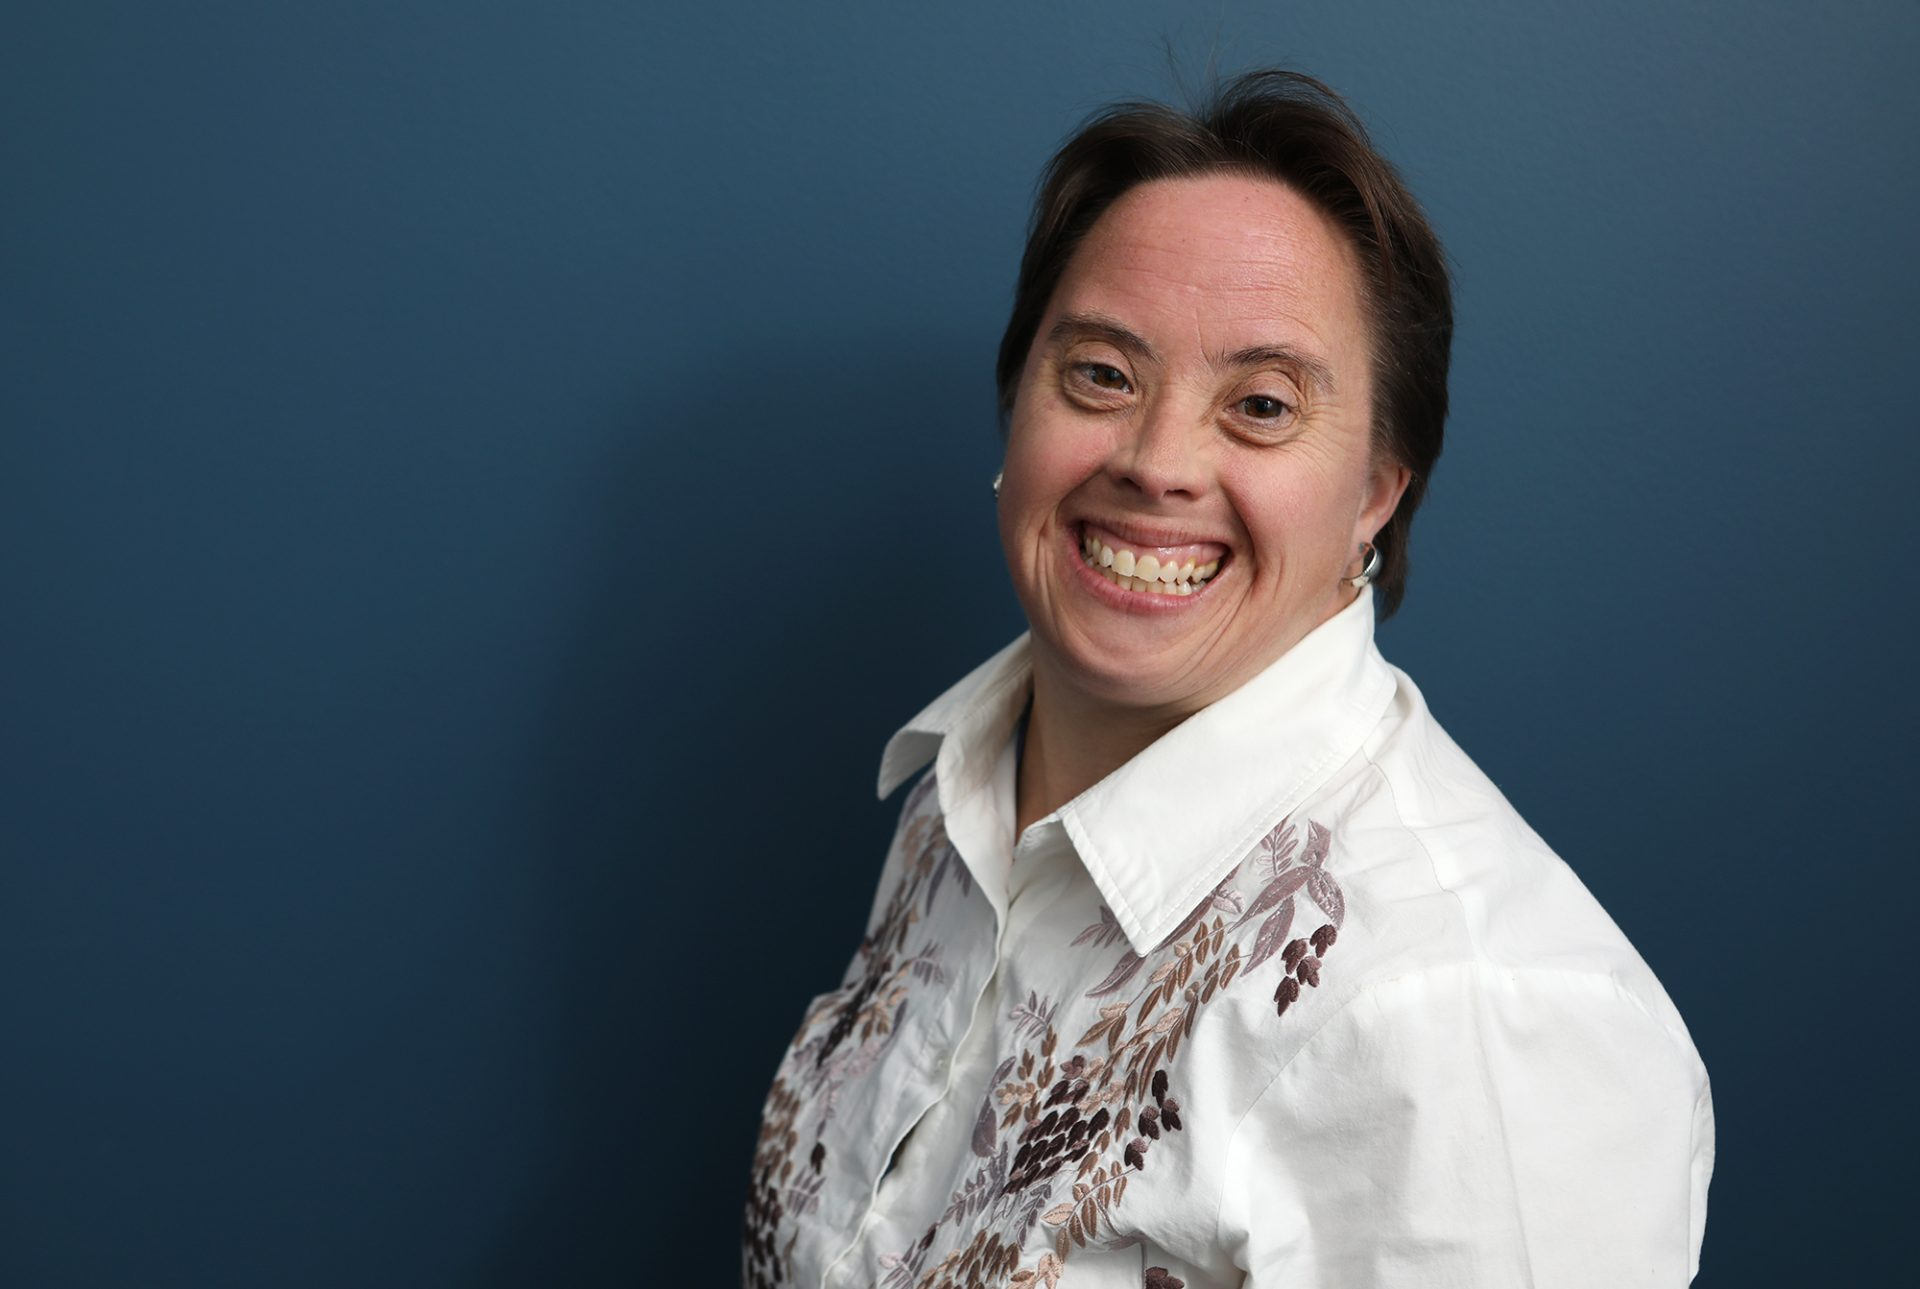 A woman with Down syndrome in a white collared shirt is smiling at the camera.